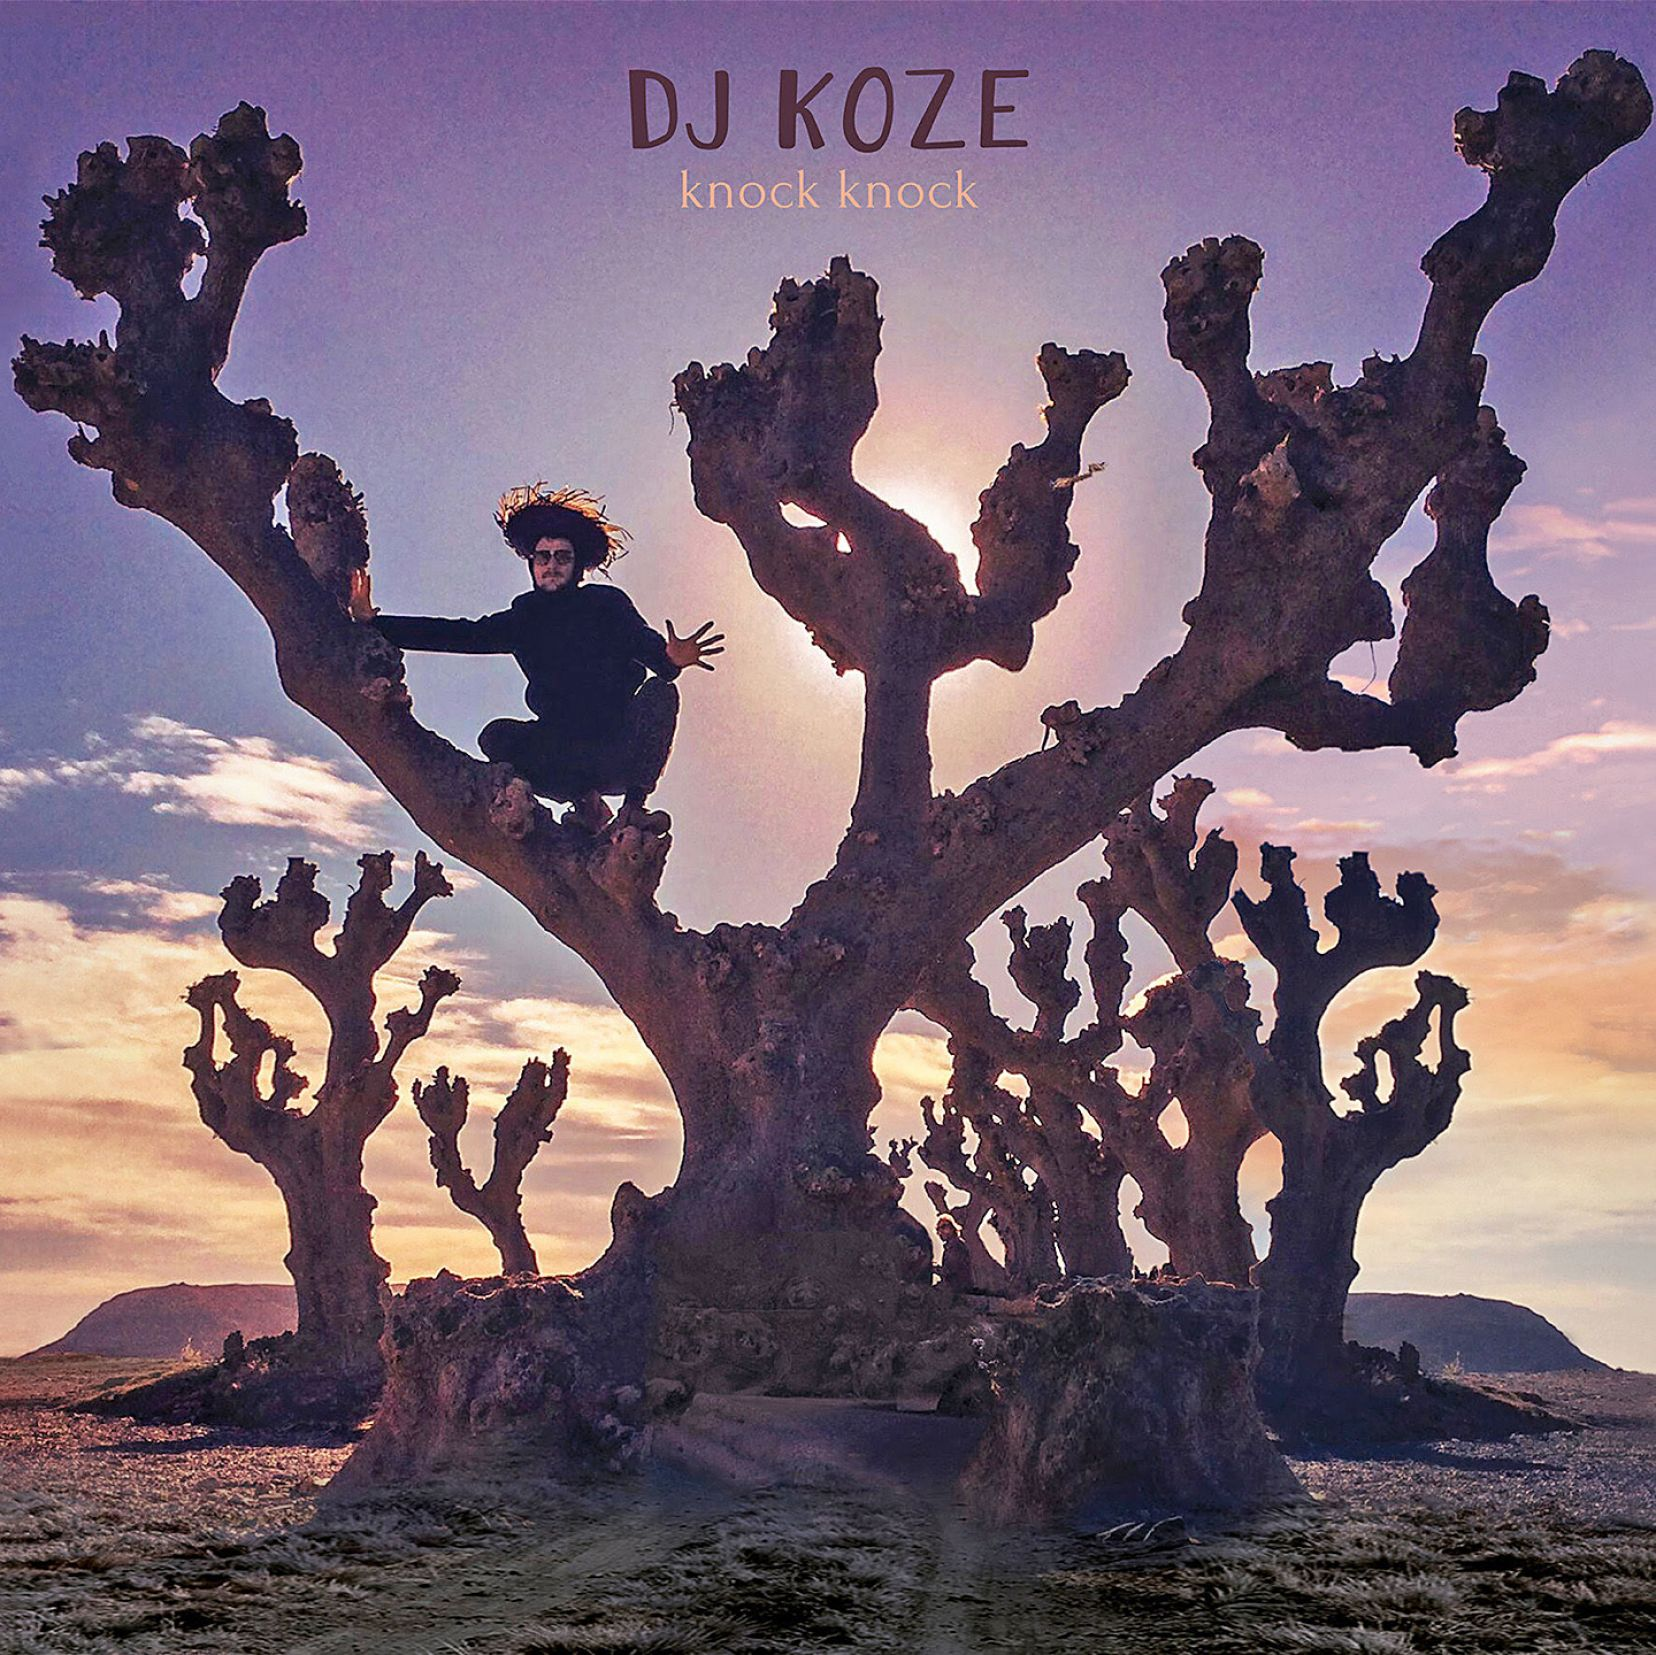 « Knock knock » – DJ Koze – Label : Pampa records / La Baleine